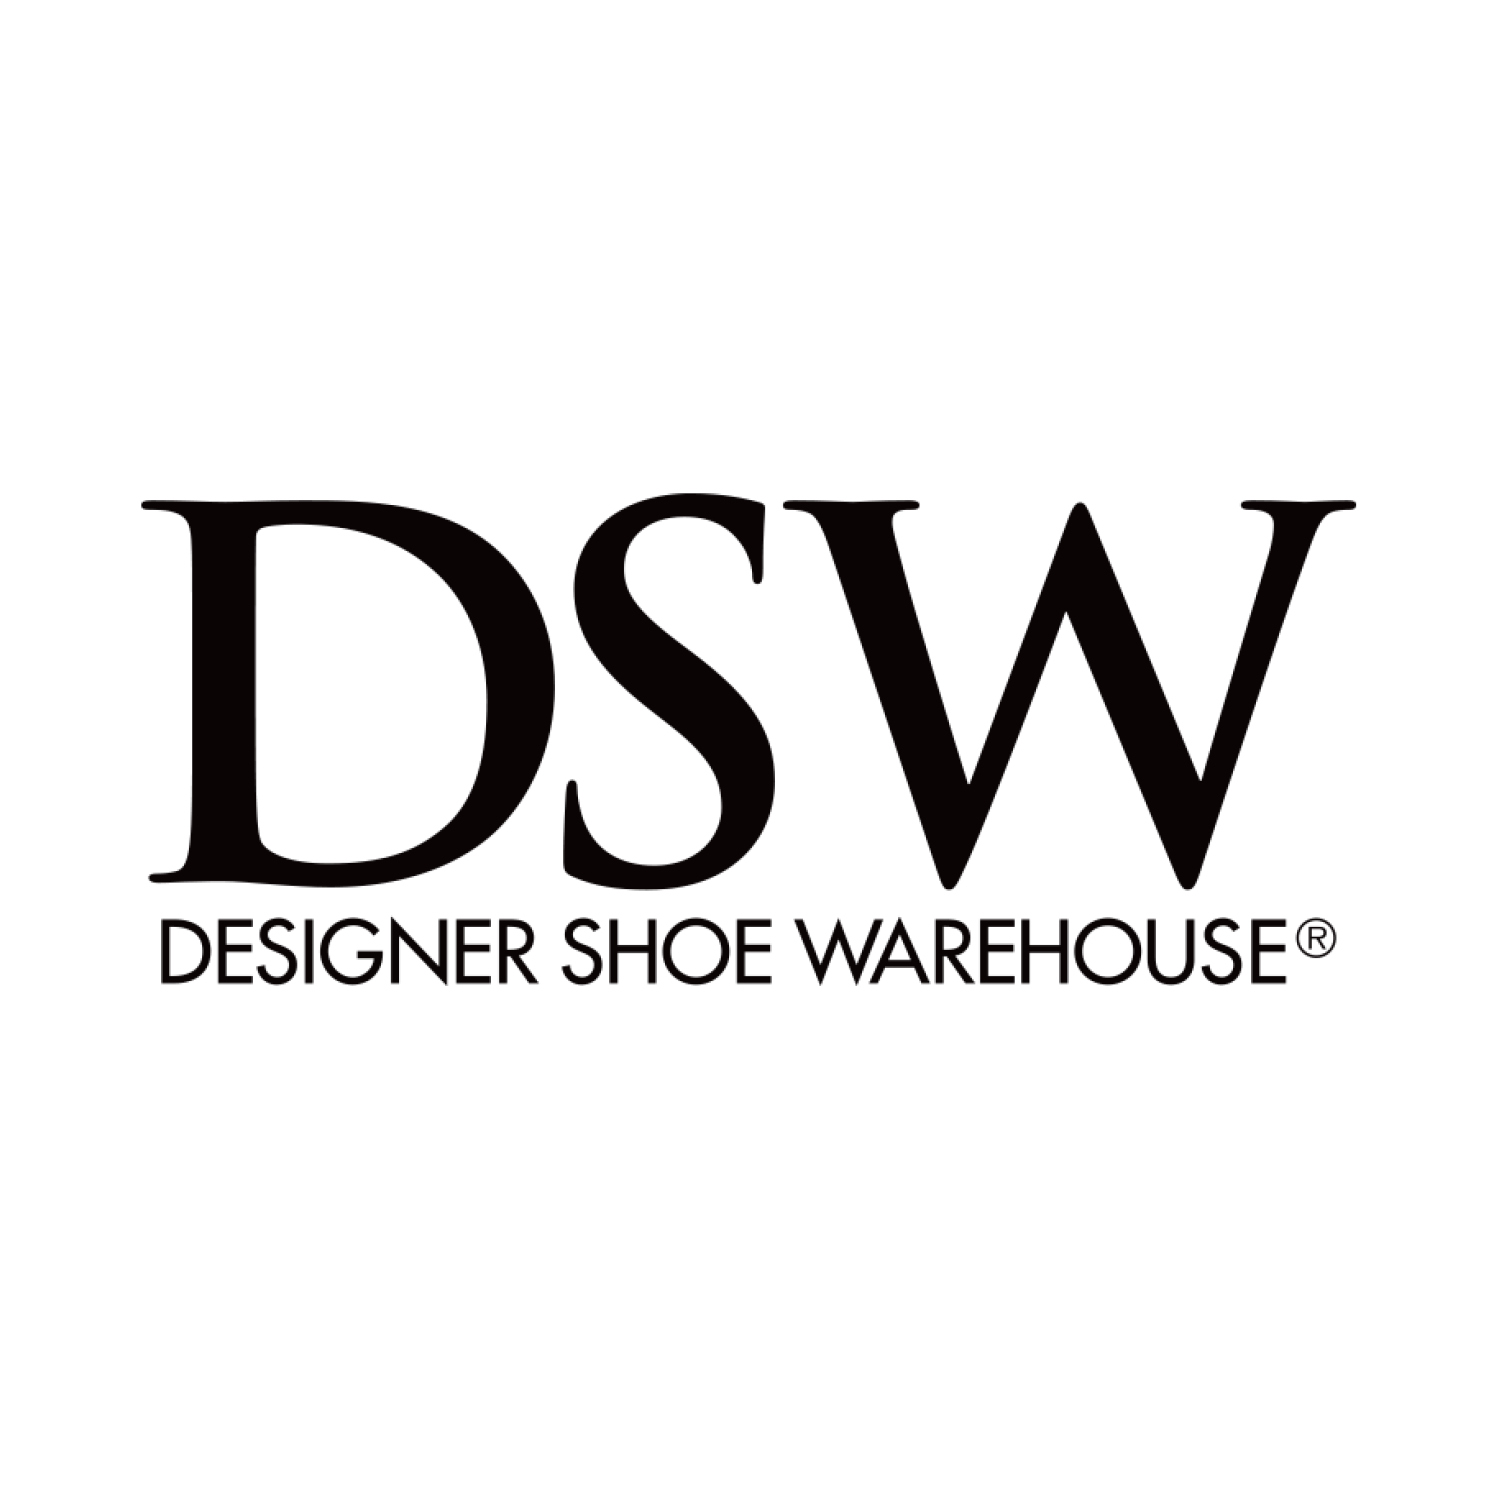 DSW Menu Sign - Price Points: $19.99 - FR